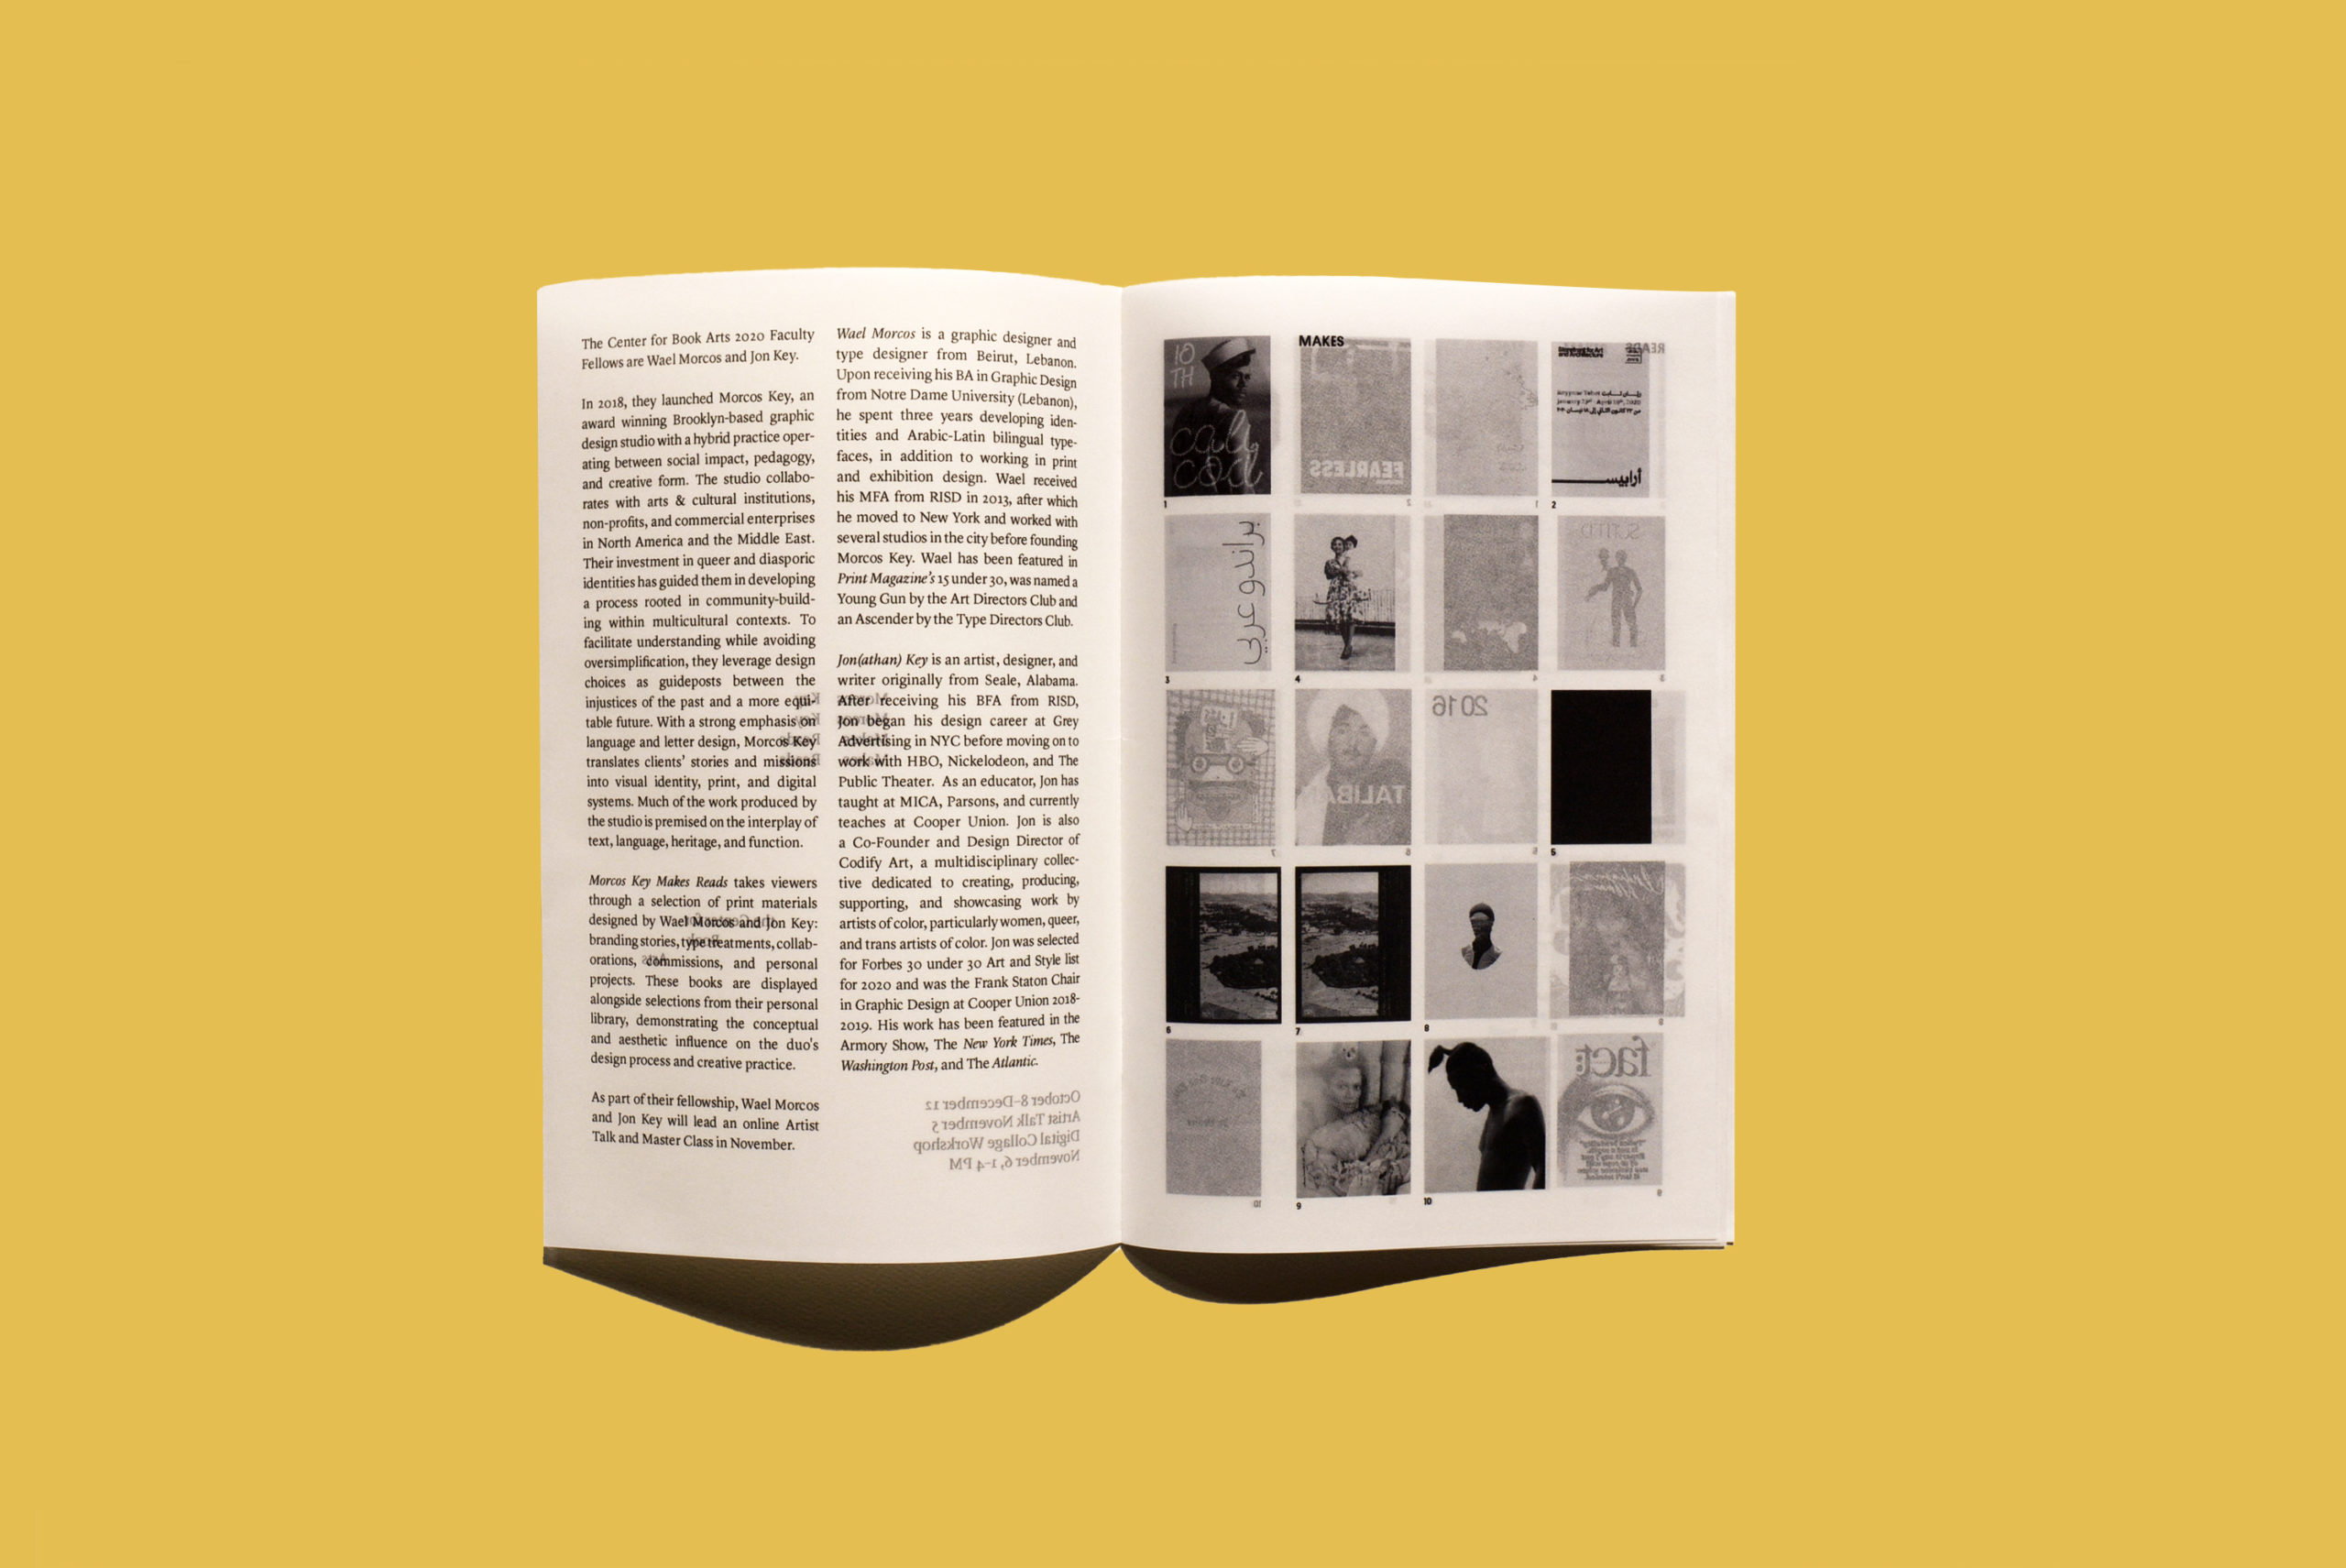 book with grid of book covers printed on translucent pages